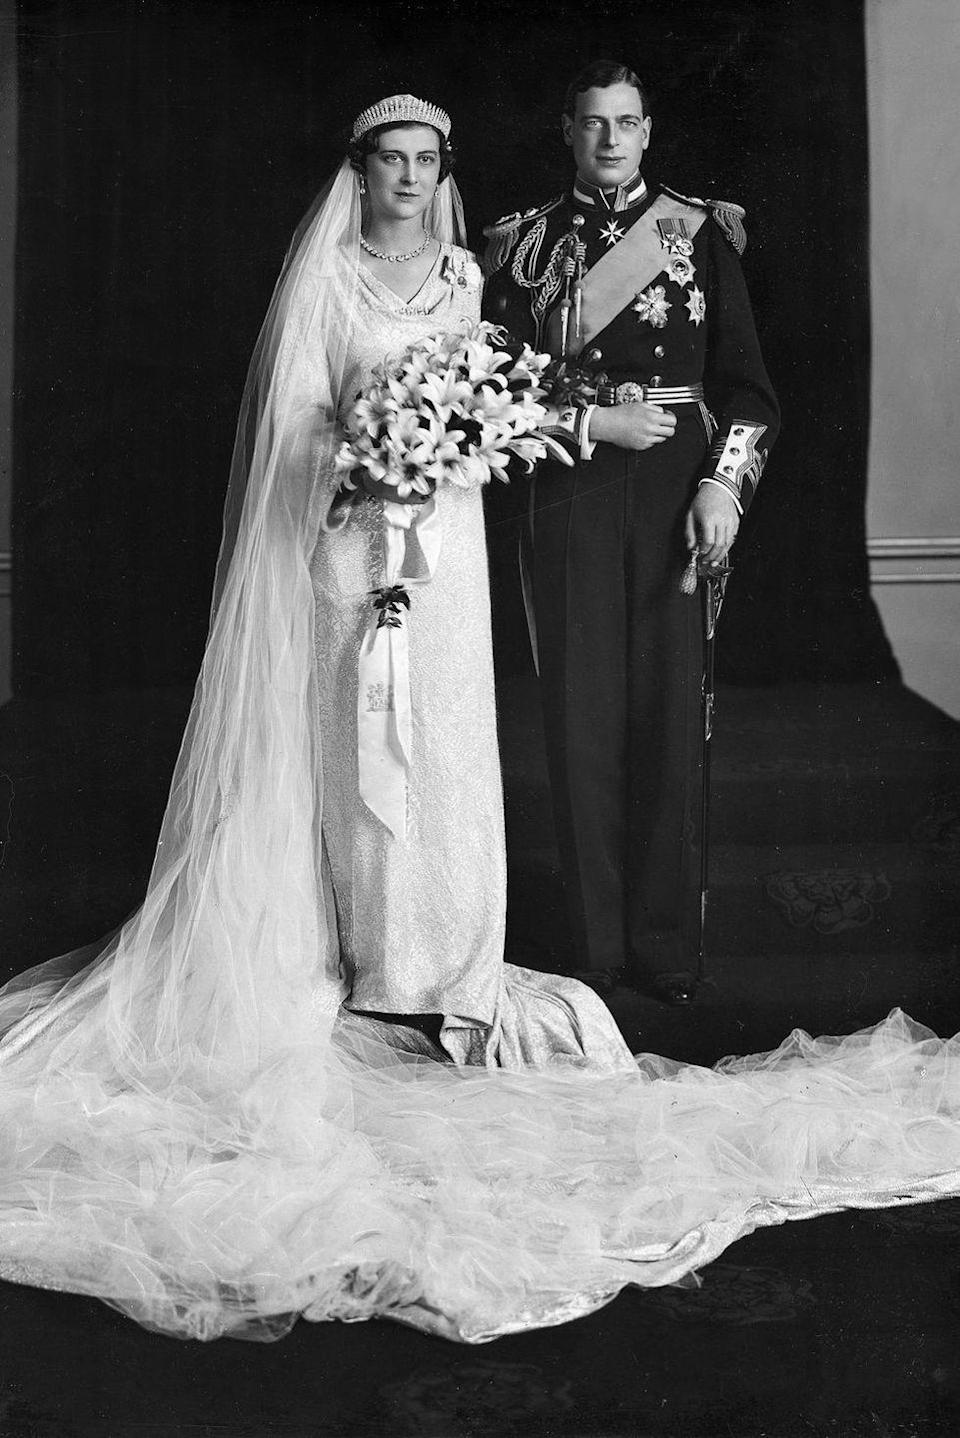 "<p><strong>Wedding date: </strong>November 29, 1934</p><p><strong>Wedding tiara: </strong>Princess Marina was given <a href=""http://orderofsplendor.blogspot.com/2012/11/tiara-thursday-kent-city-of-london.html"" rel=""nofollow noopener"" target=""_blank"" data-ylk=""slk:this diamond fringe tiara"" class=""link rapid-noclick-resp"">this diamond fringe tiara</a> by the City of London on her wedding day, when she married Prince George, Duke of Kent. The tiara has since earned the name Kent City of London Fringe Tiara, and has also been worn by Marina's daughter, Alexandra, and daughter-in-law Marie-Christine on their wedding days.</p>"